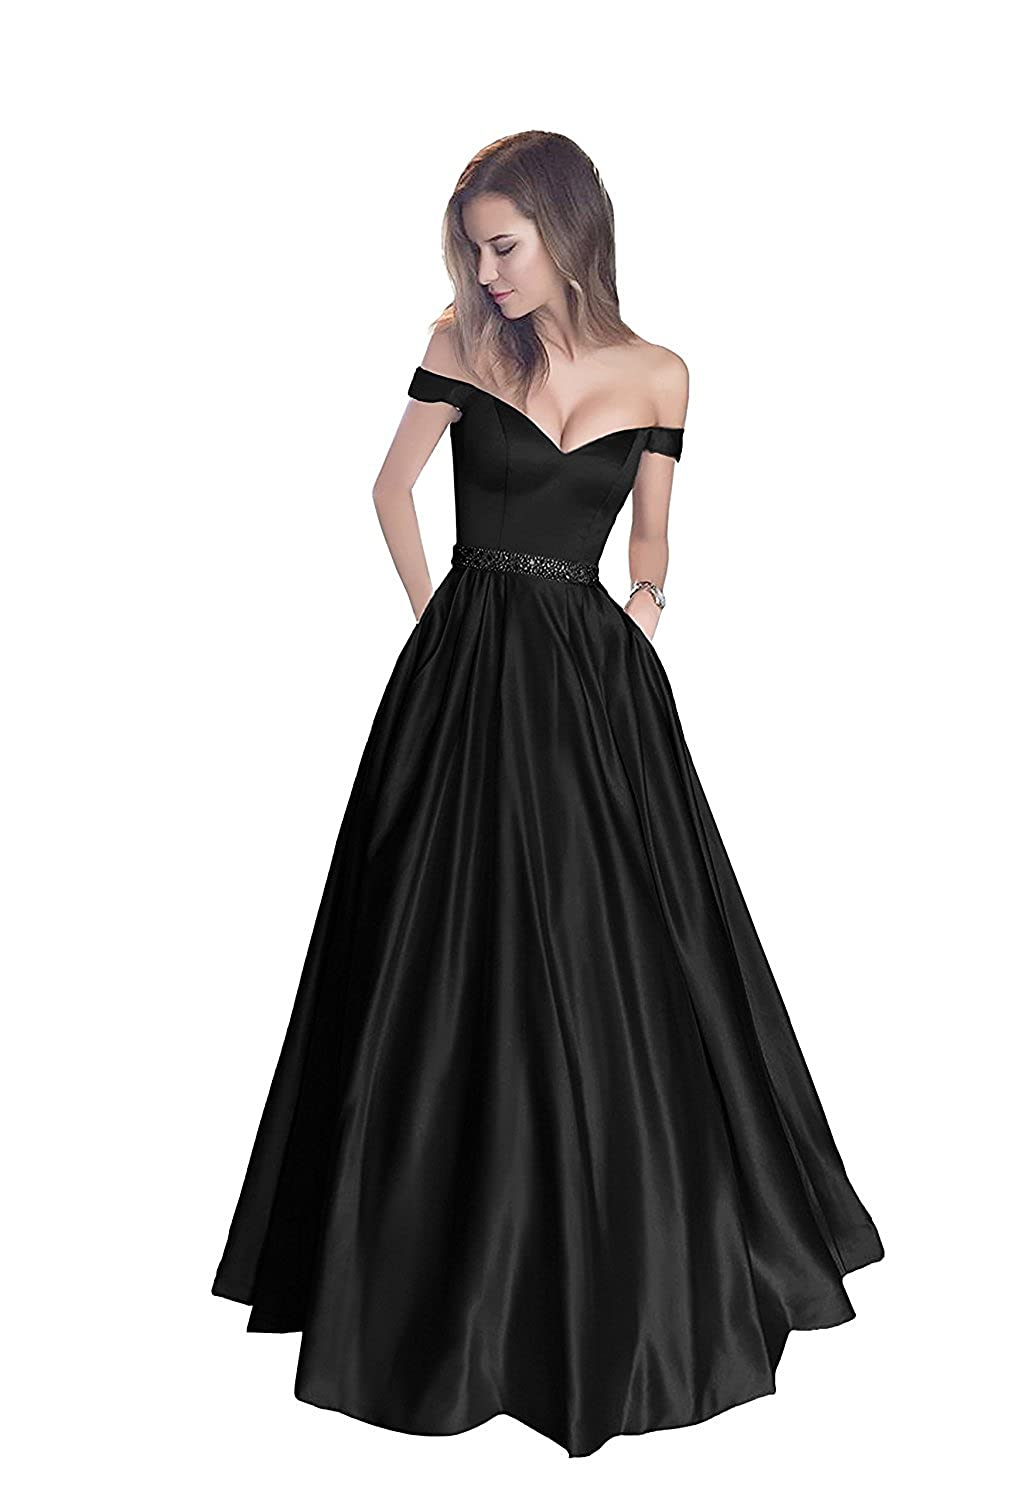 Black1 LISA.MOON Women's V Neck Long Sleeves Back Hole Lace Applique Pearl Evening Gown